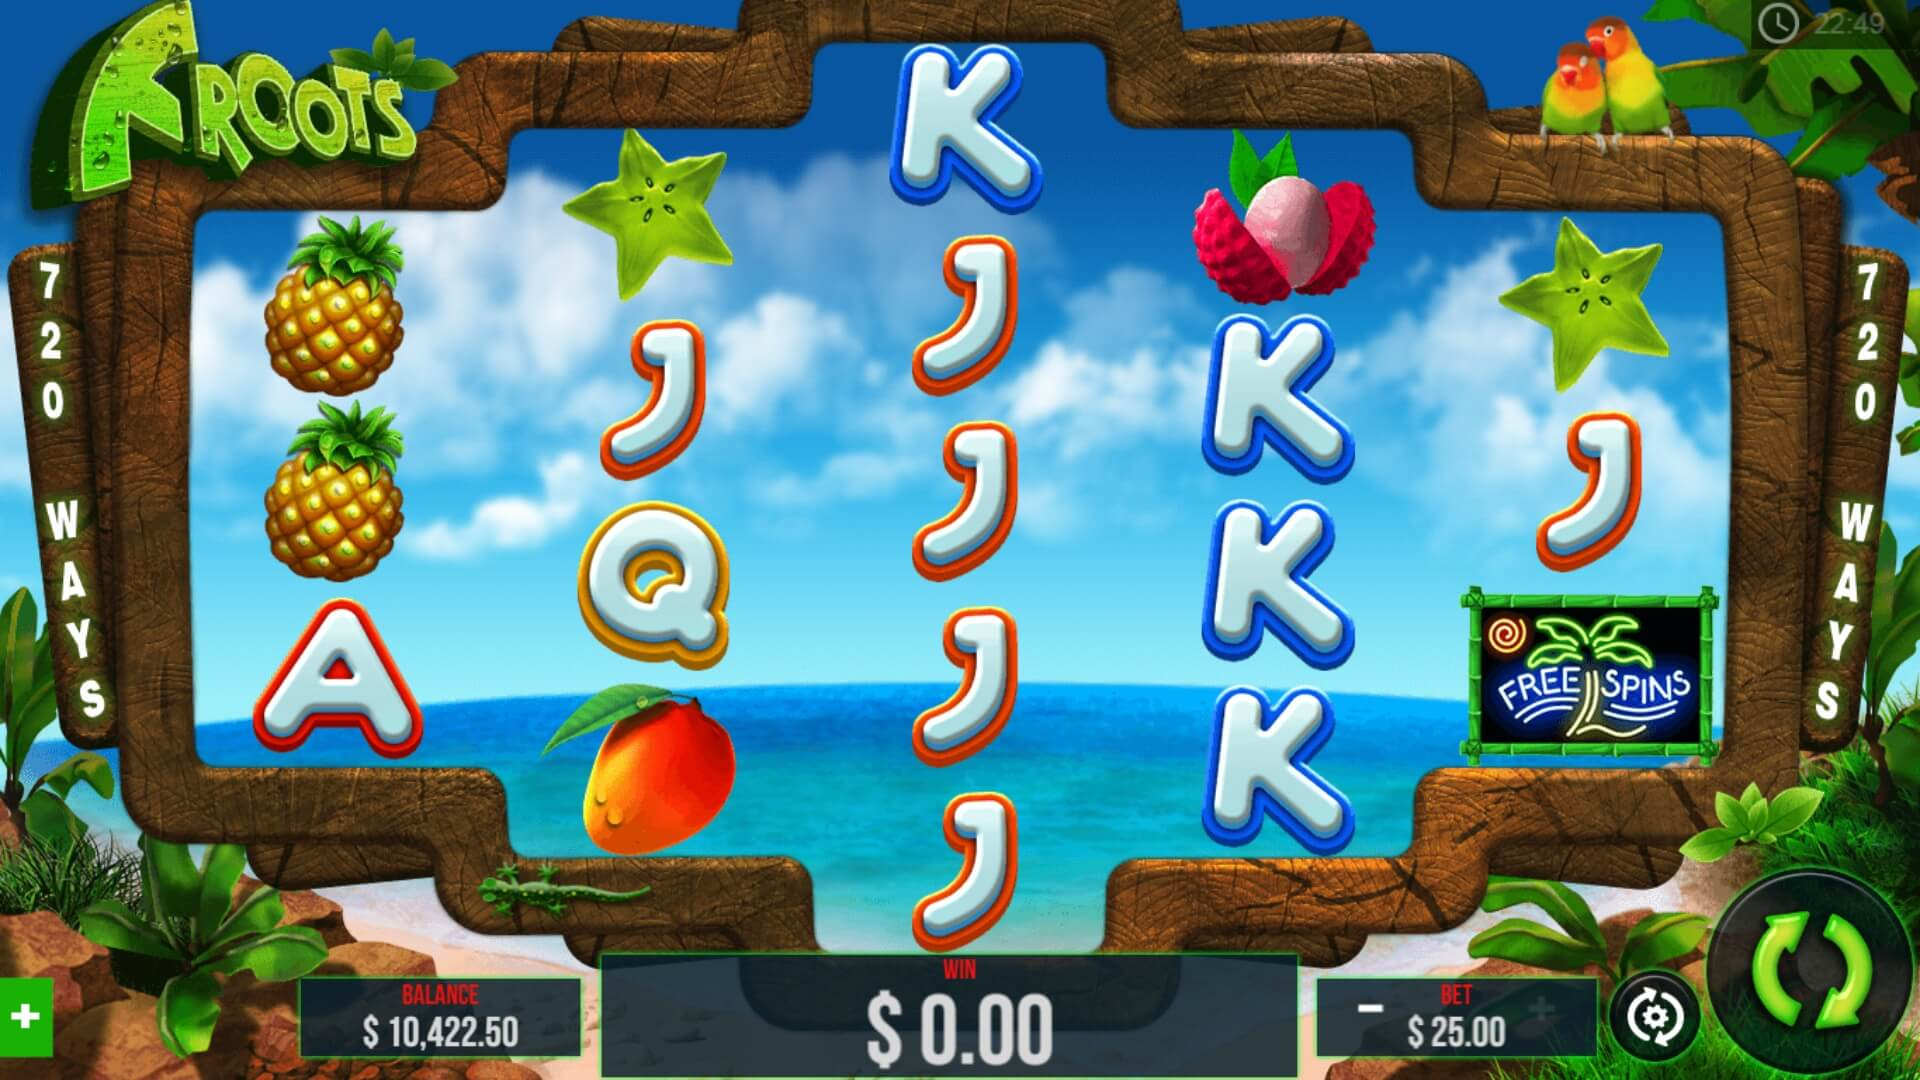 Froots Slot Gameplay